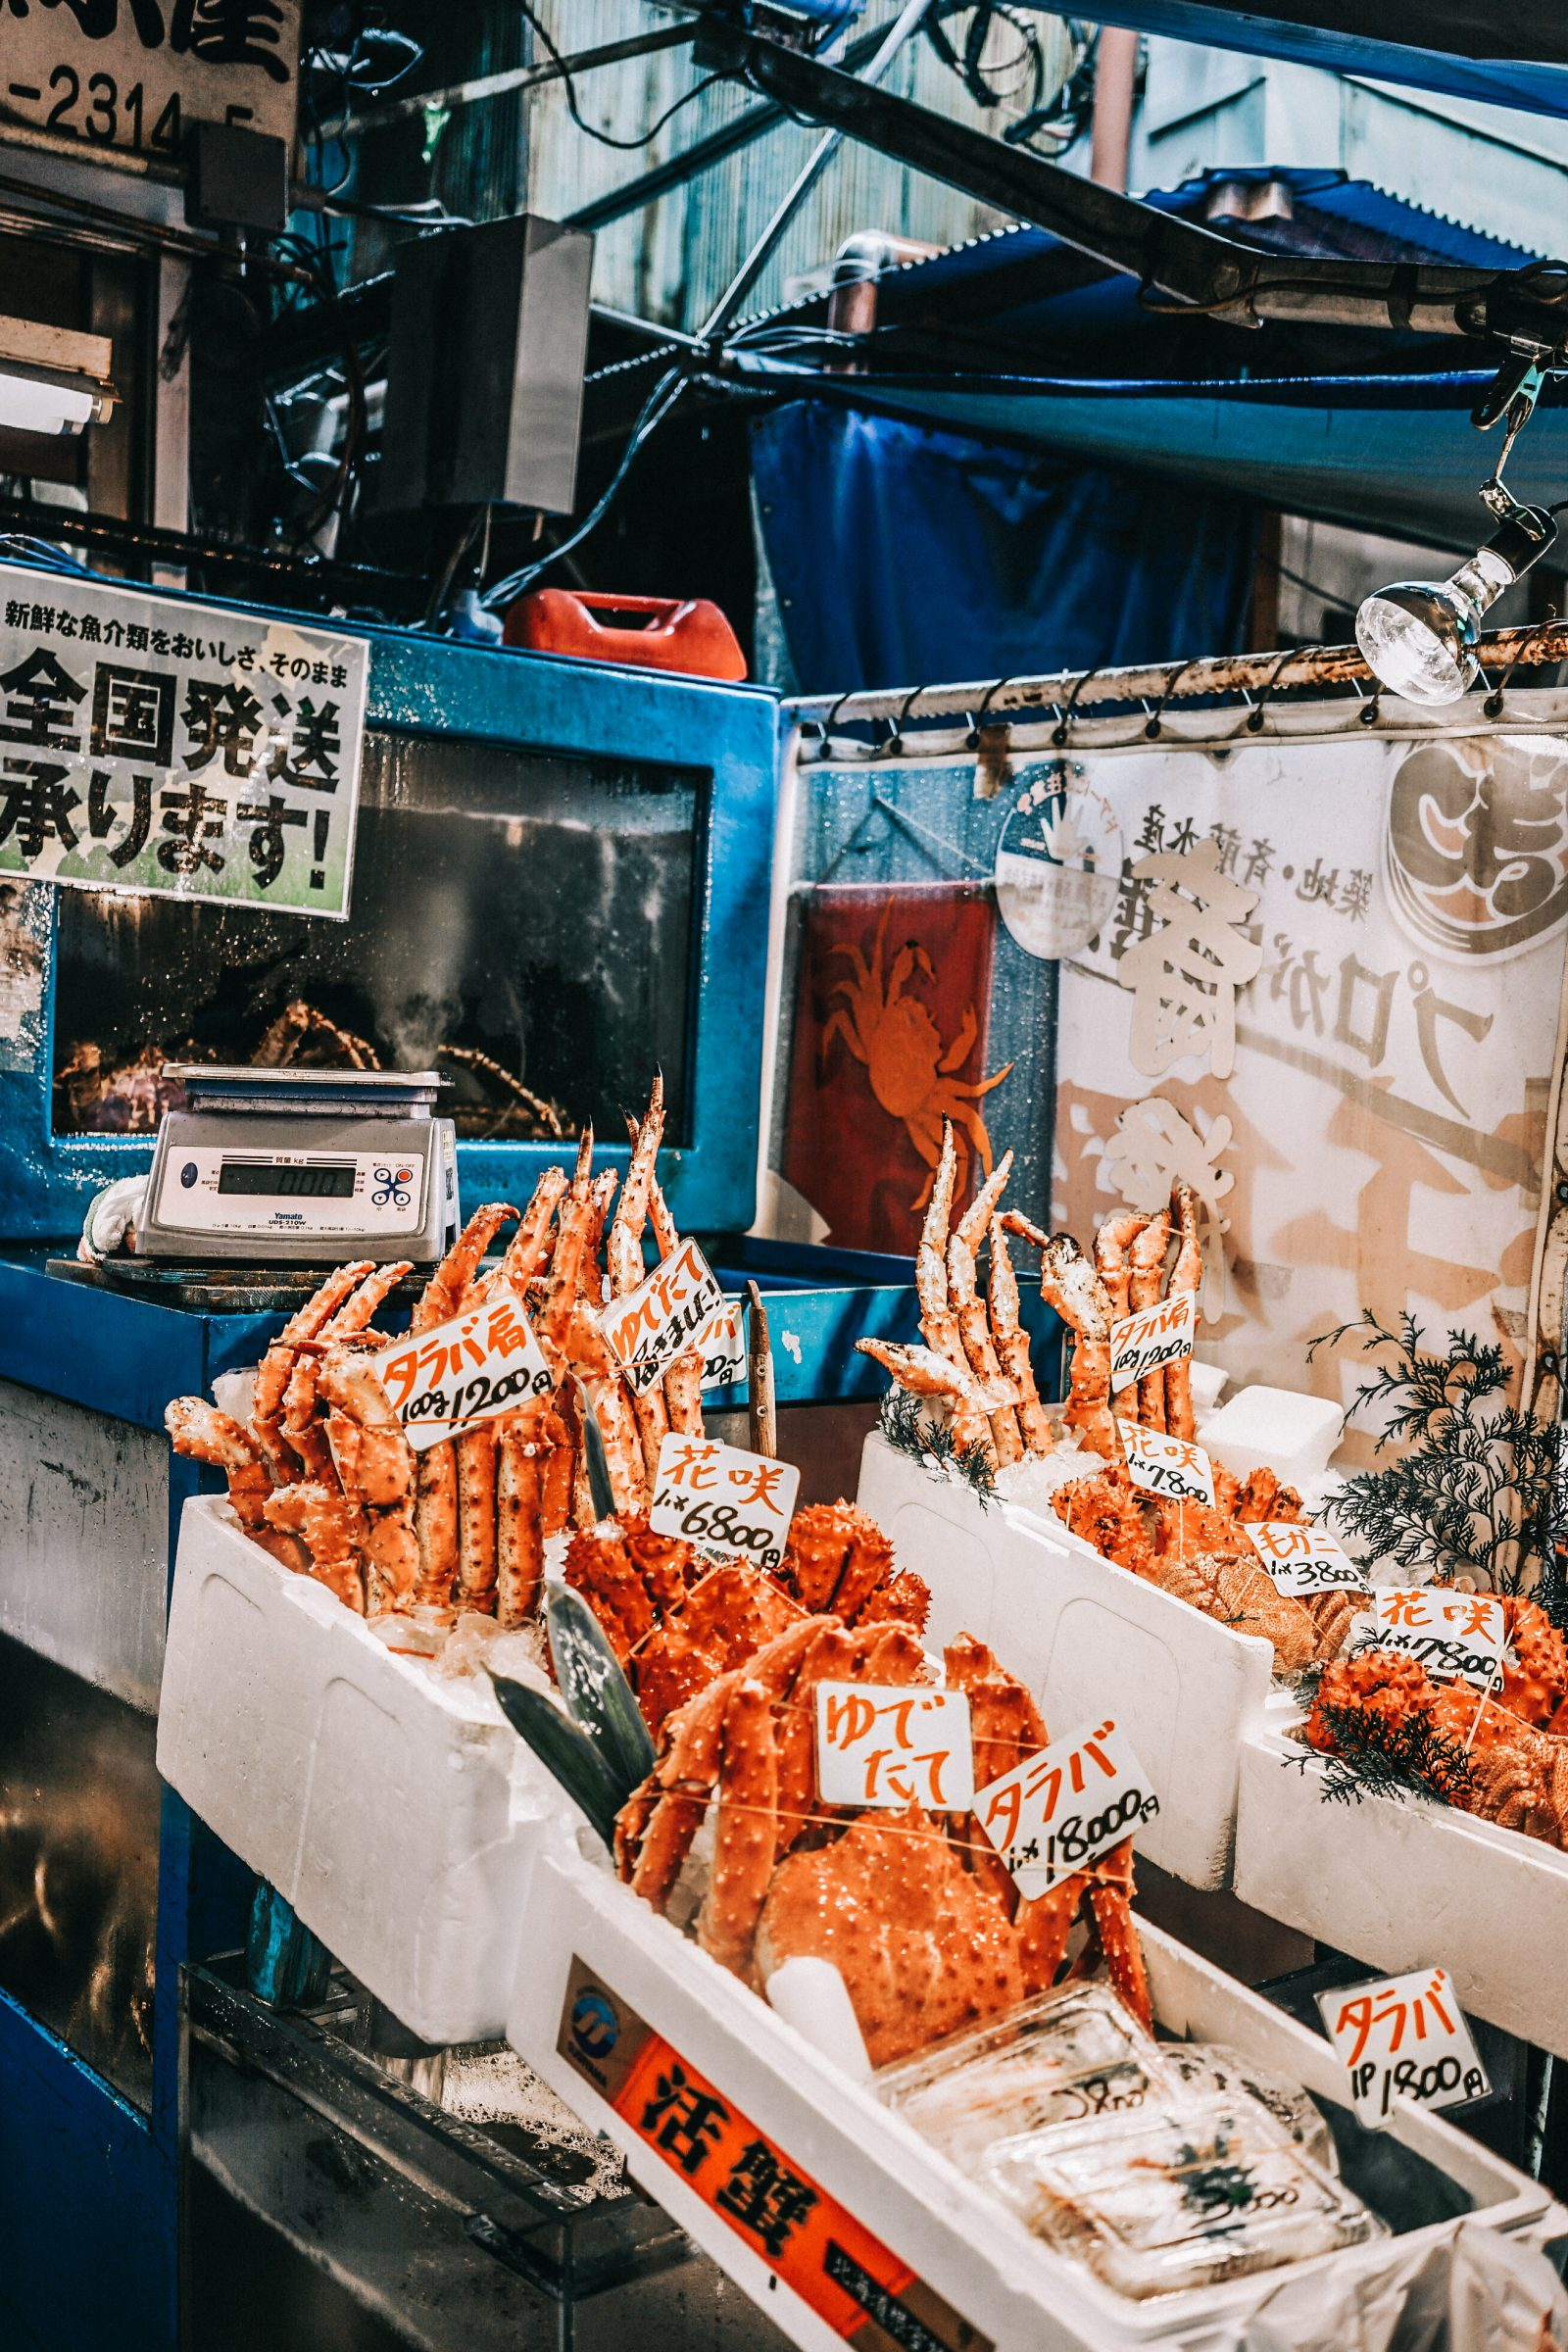 Tokyo_Travel_Guide-Fish_Market-Harajuku-Levis_Denim_Skirt-Off_The_Shoulders_Top-YSL_Sneakers-Outfit-Collage_Vintage-Street_Style-29